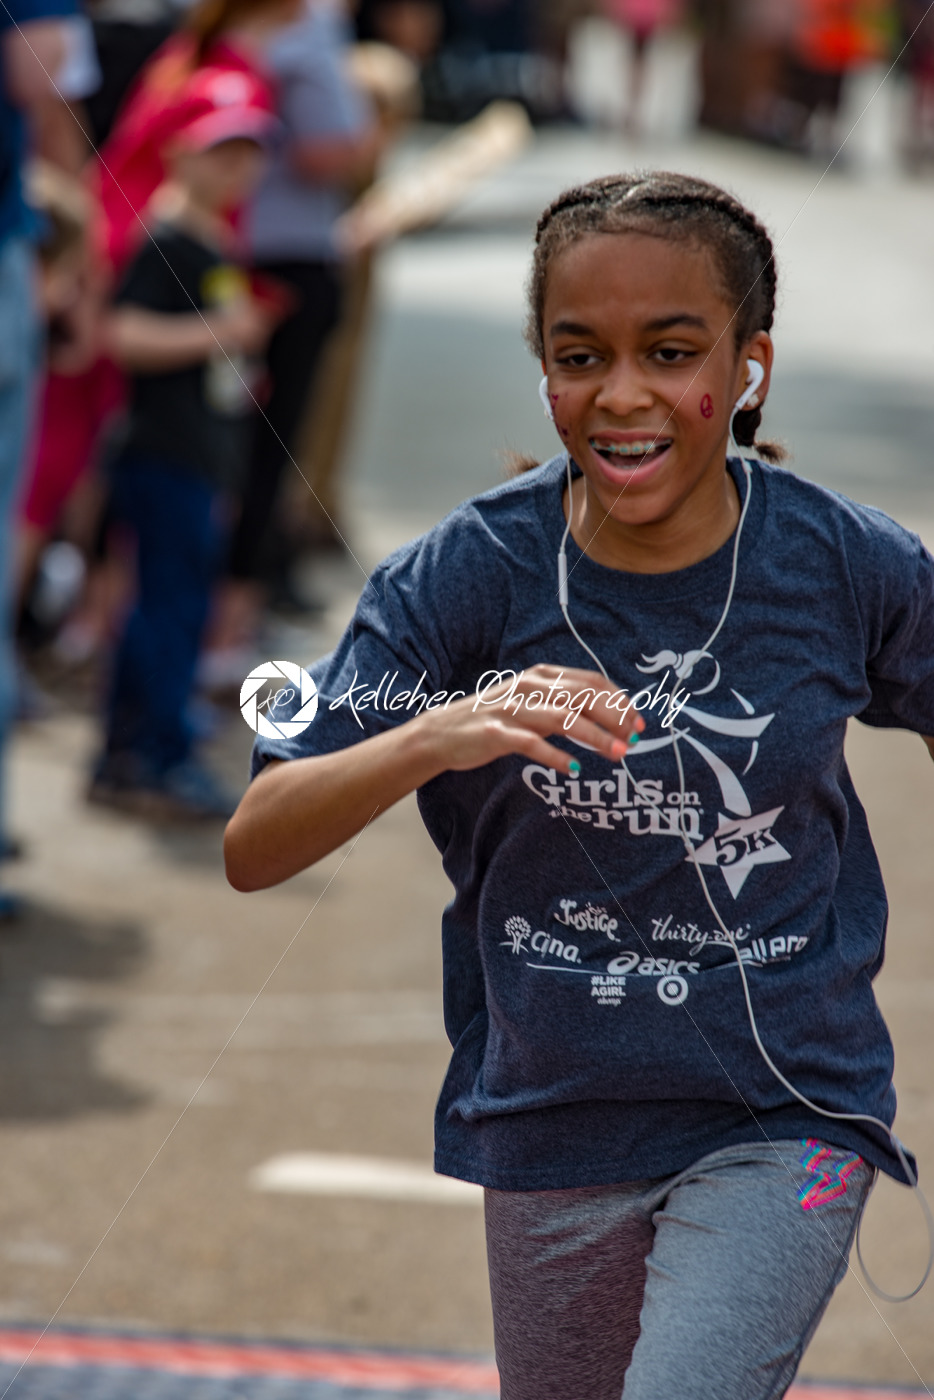 Blue Bell, PA -May 20, 2018: Girls on the Run 5k Finish - Kelleher Photography Store